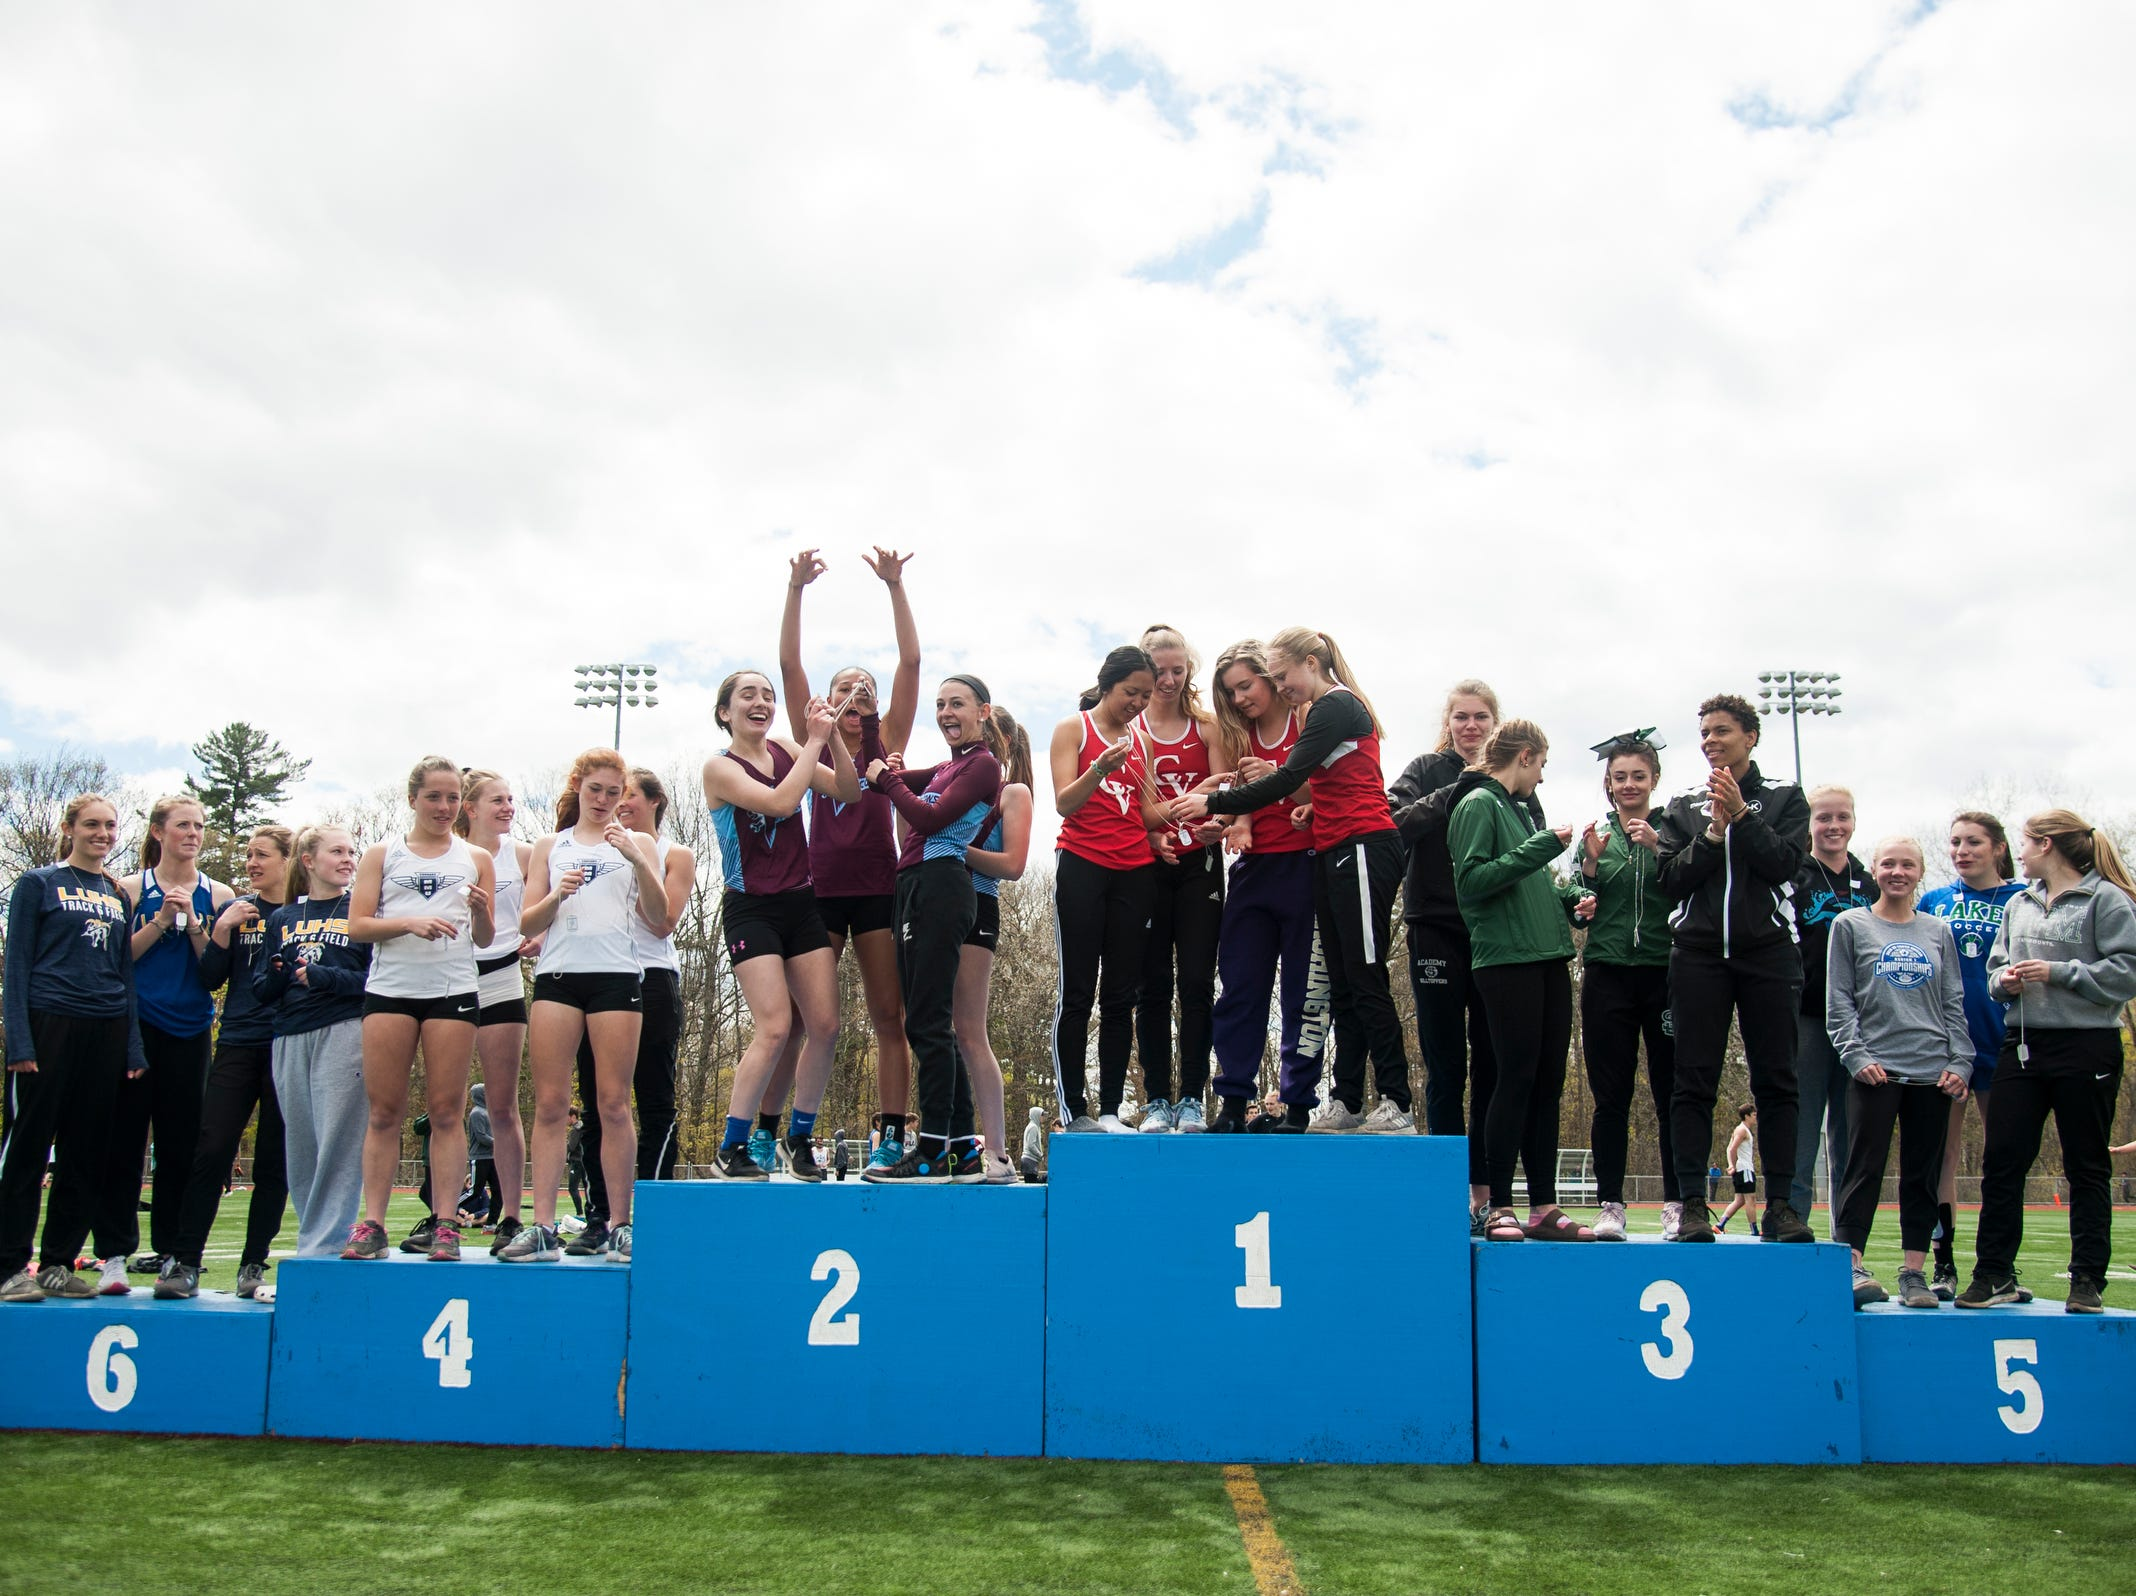 The relay runners receiver their awards during the Burlington Invitational high school track and field meet at Buck Hard Field on Saturday May 11, 2019 in Burlington, Vermont.